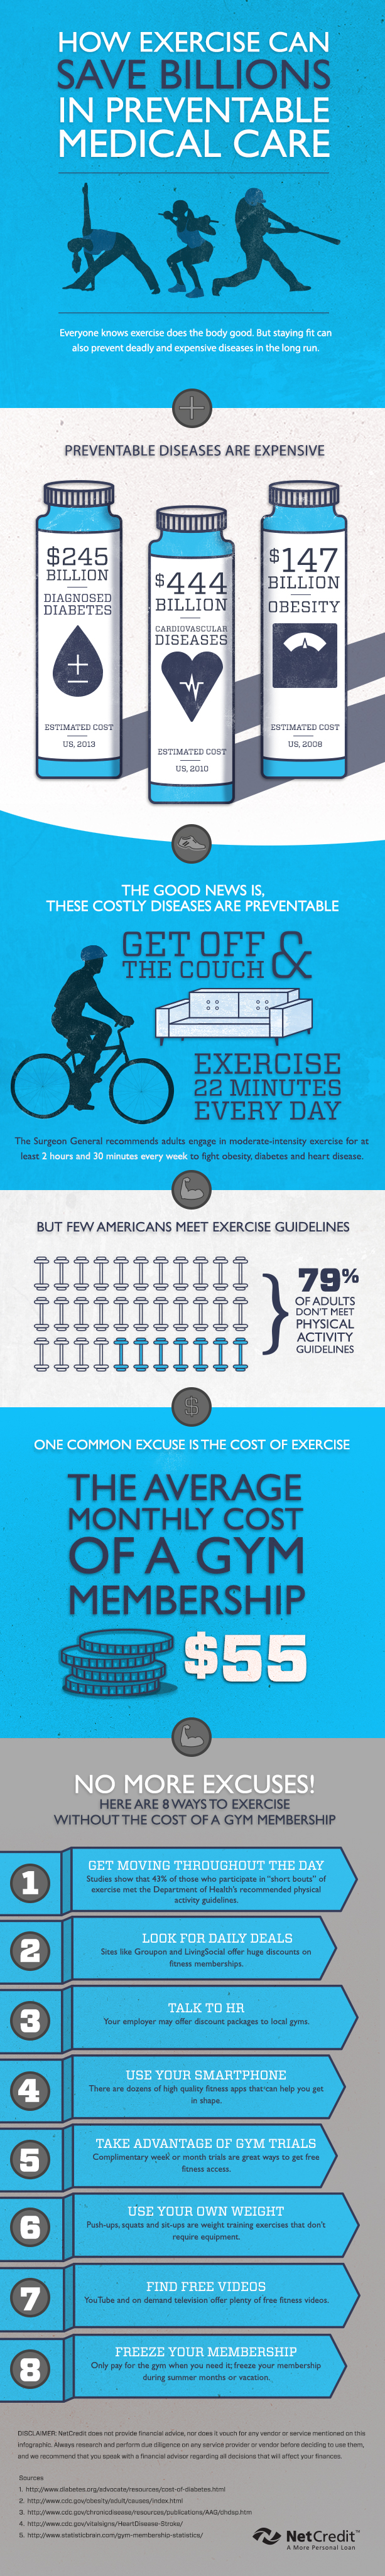 Two Mega Benefits of Exercise: Your Positive Health, and Major Savings in Medical Care Costs - Infographic